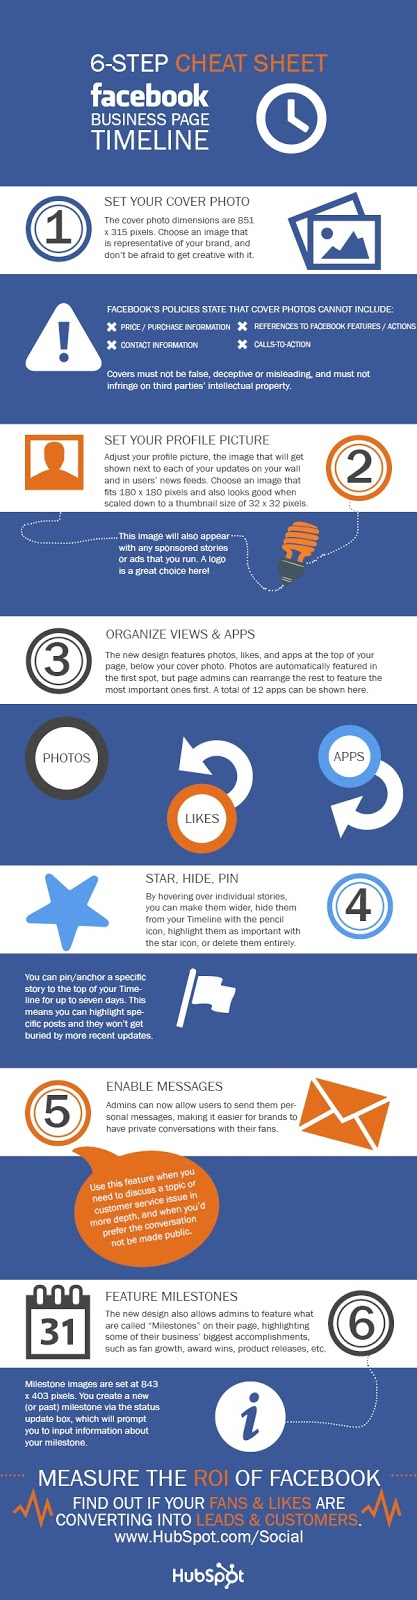 10 High Quality Facebook Infographics and Cheat Sheets